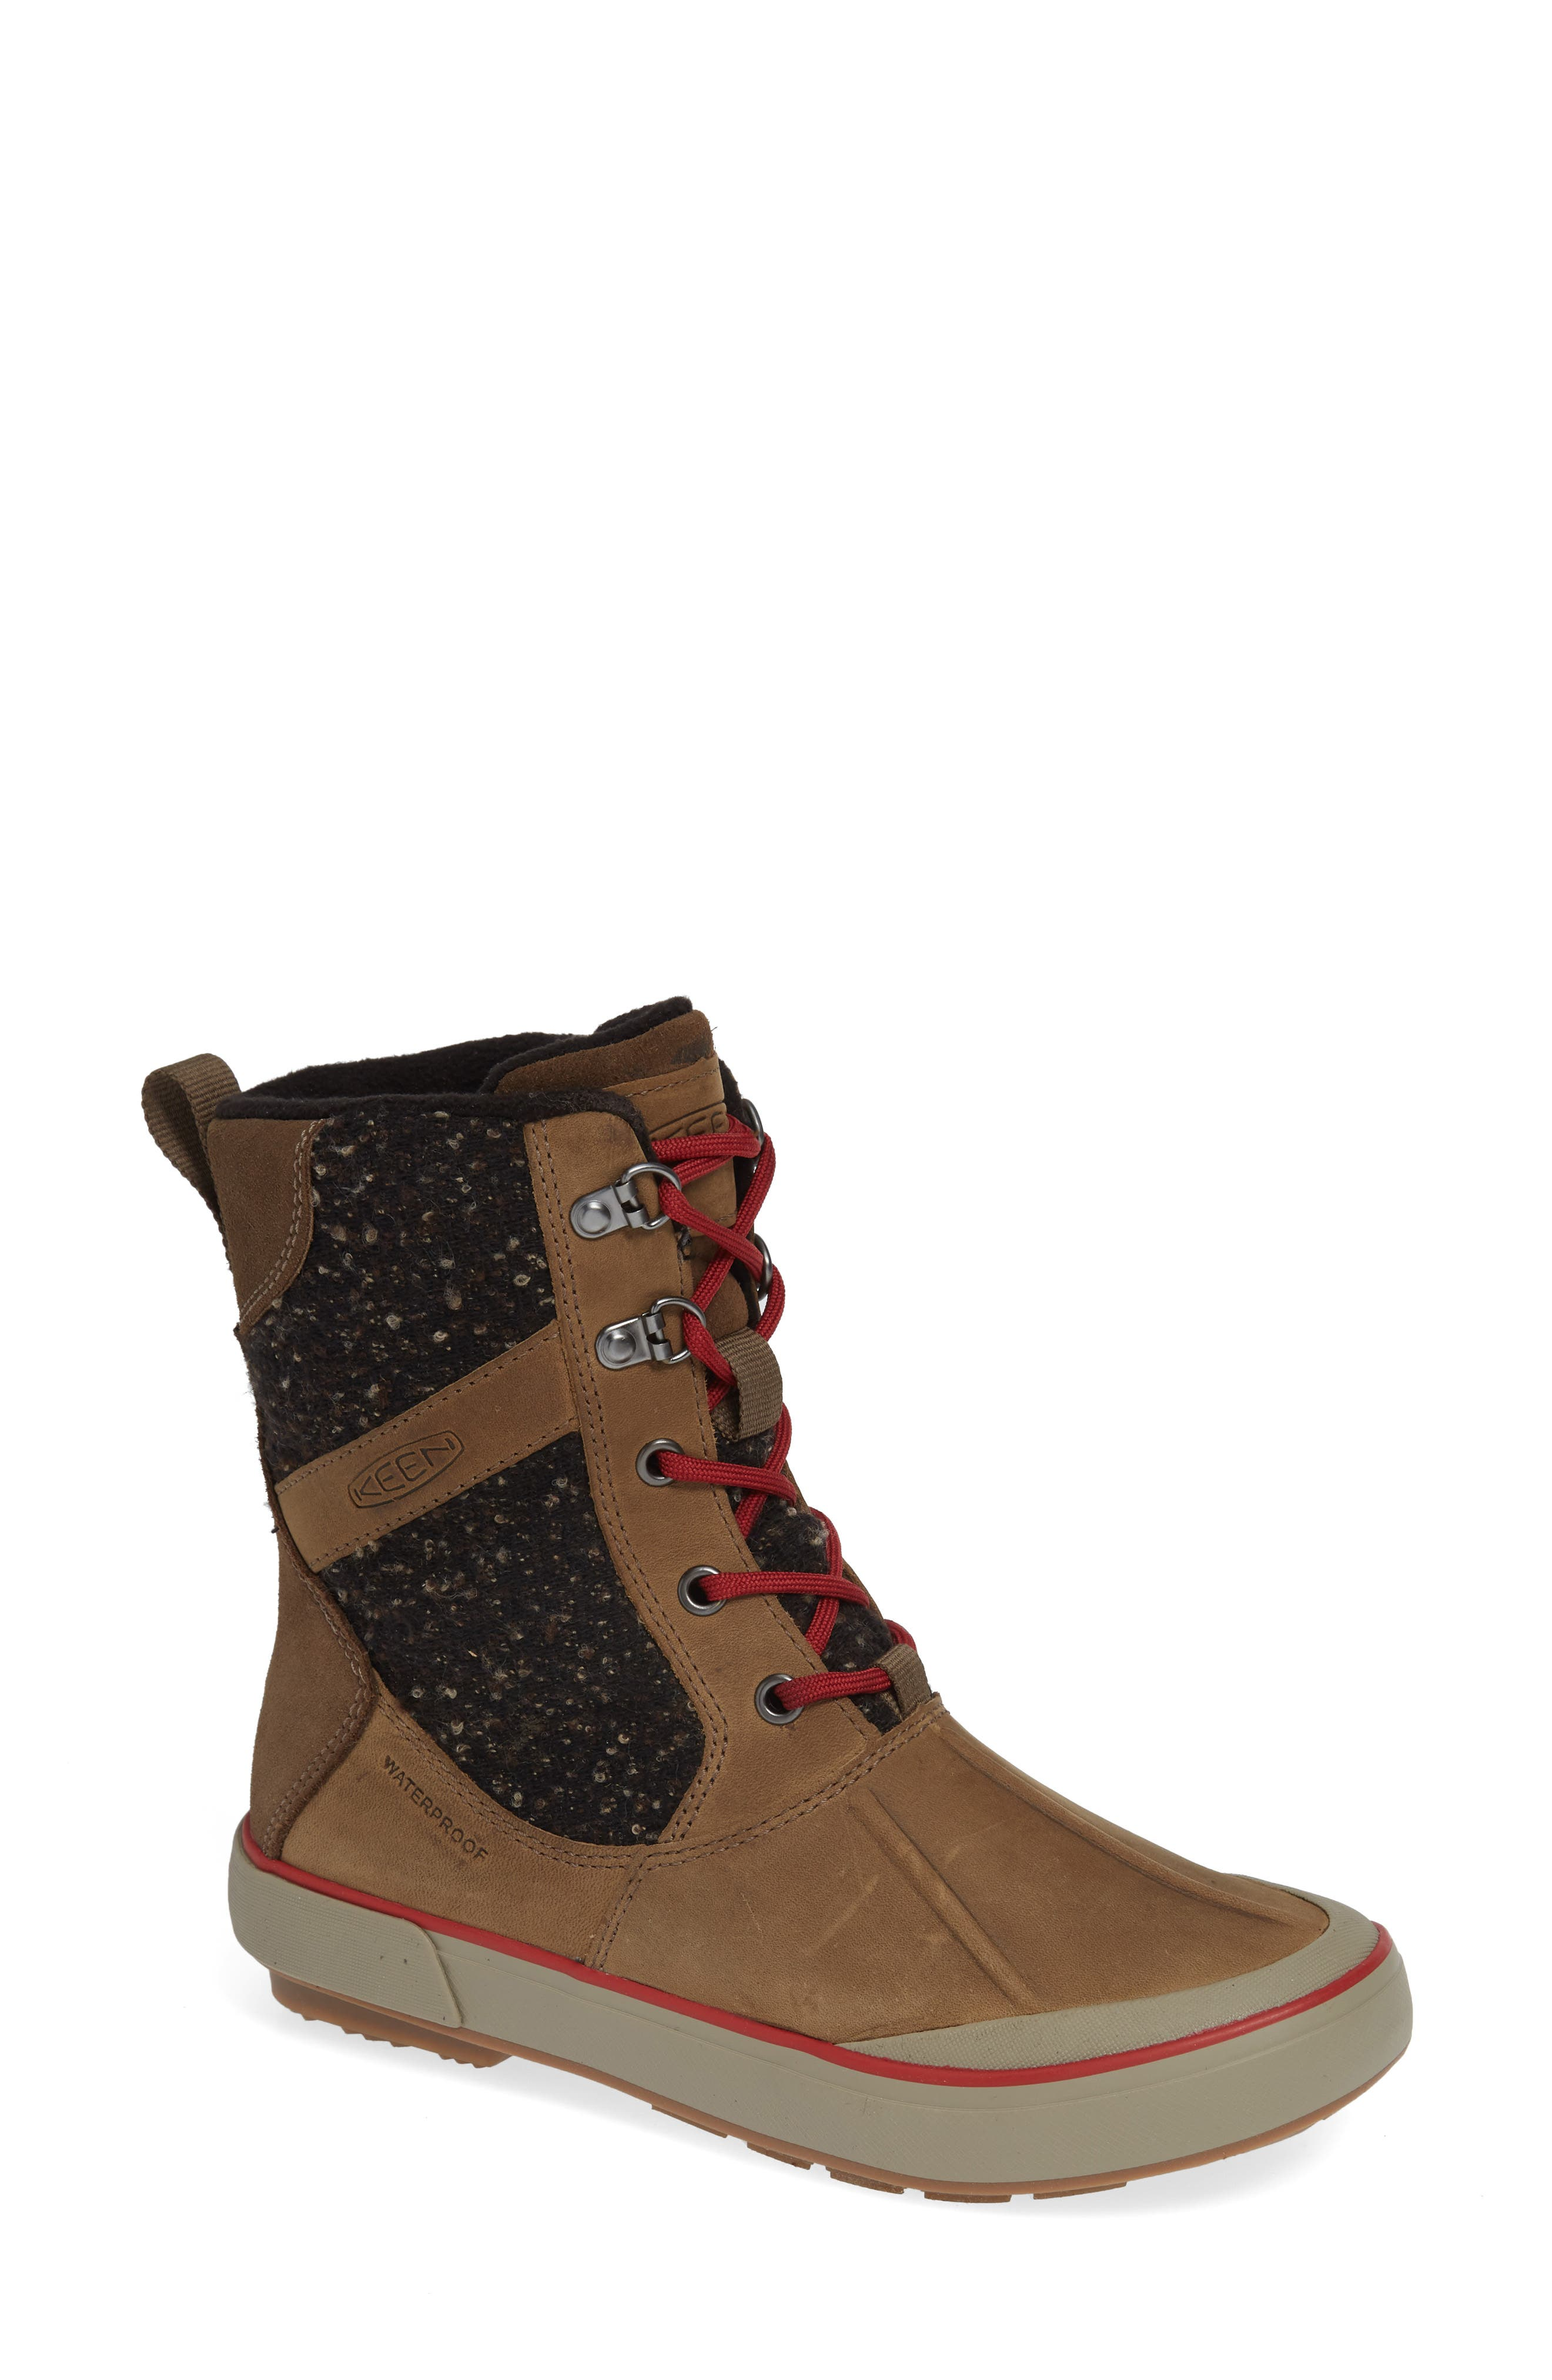 Keen Elsa Ii Waterproof Winter Bootie- Brown